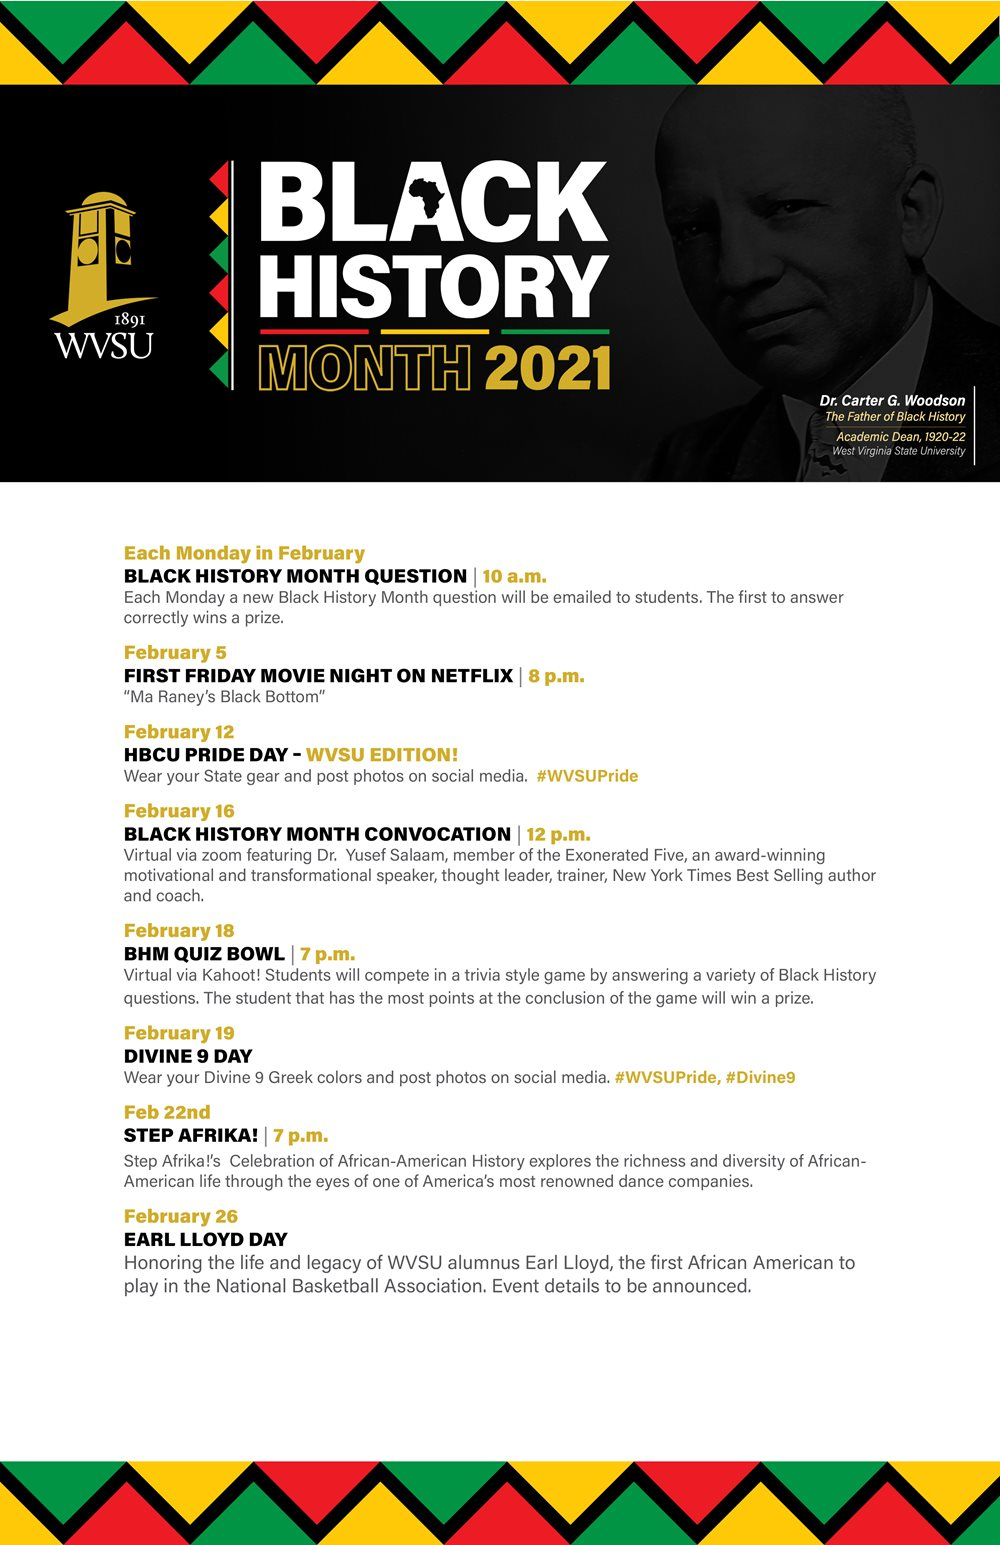 Black History Month 2021 Calendar of Events